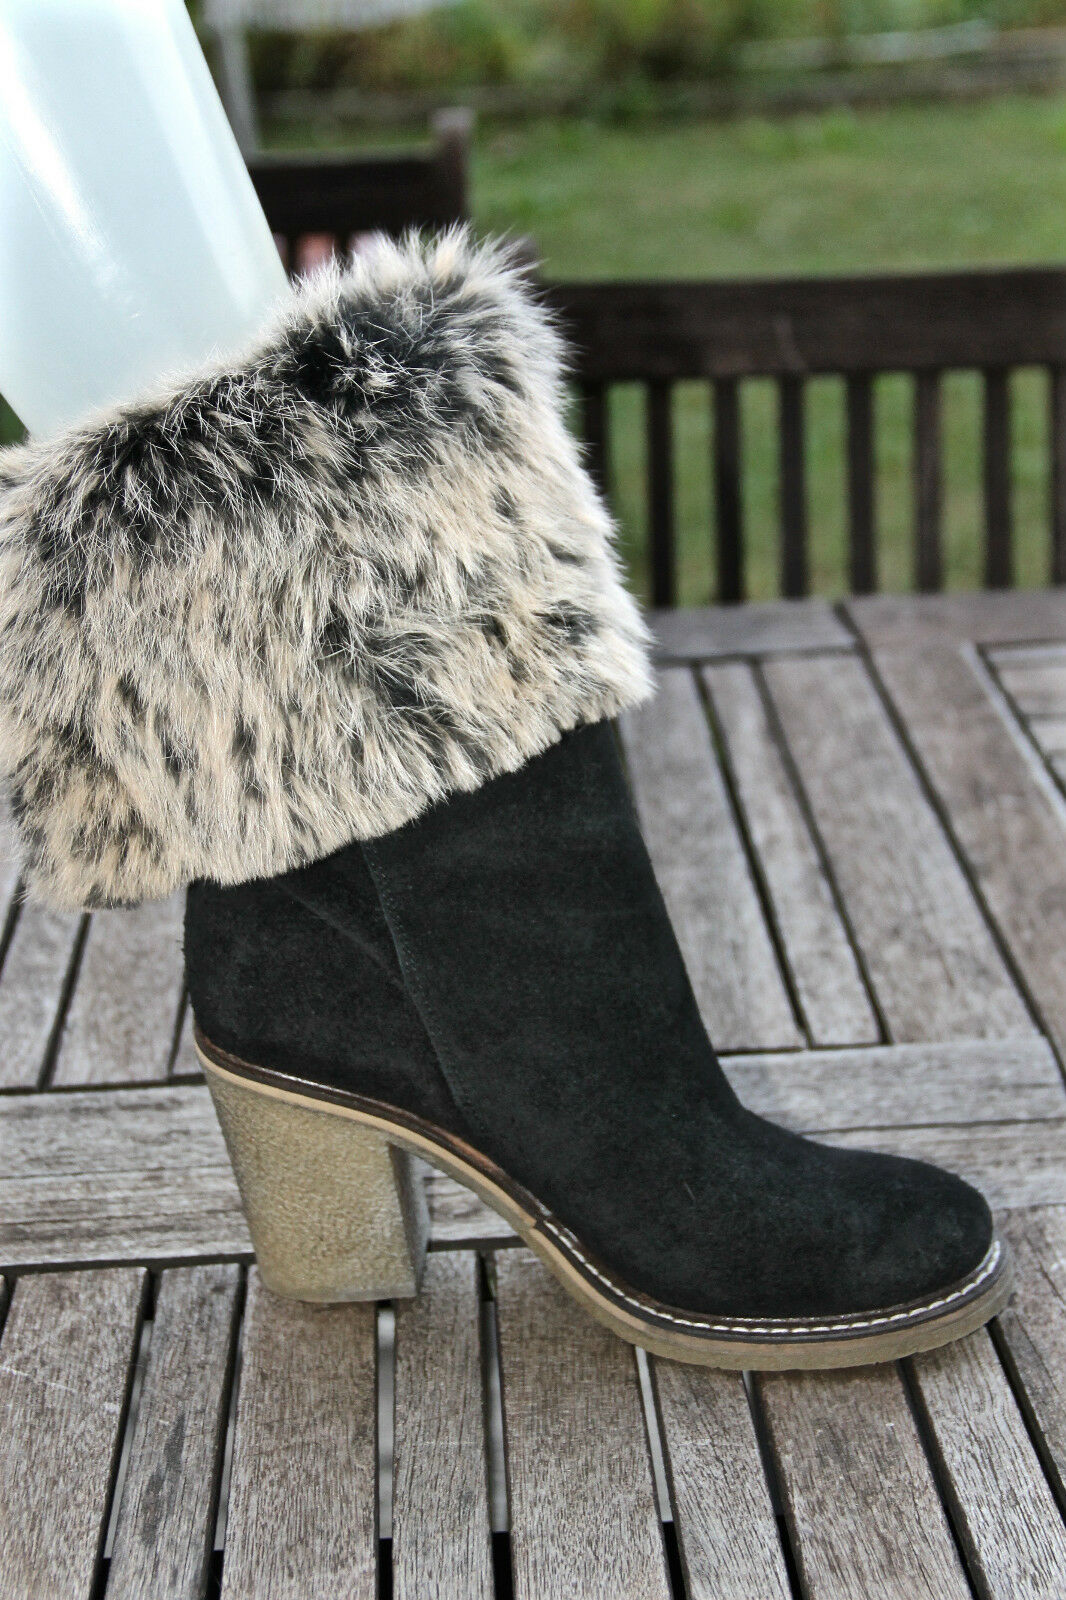 pretty boots suede black and fur MELINE 38 size 38 MELINE MINT dd4295